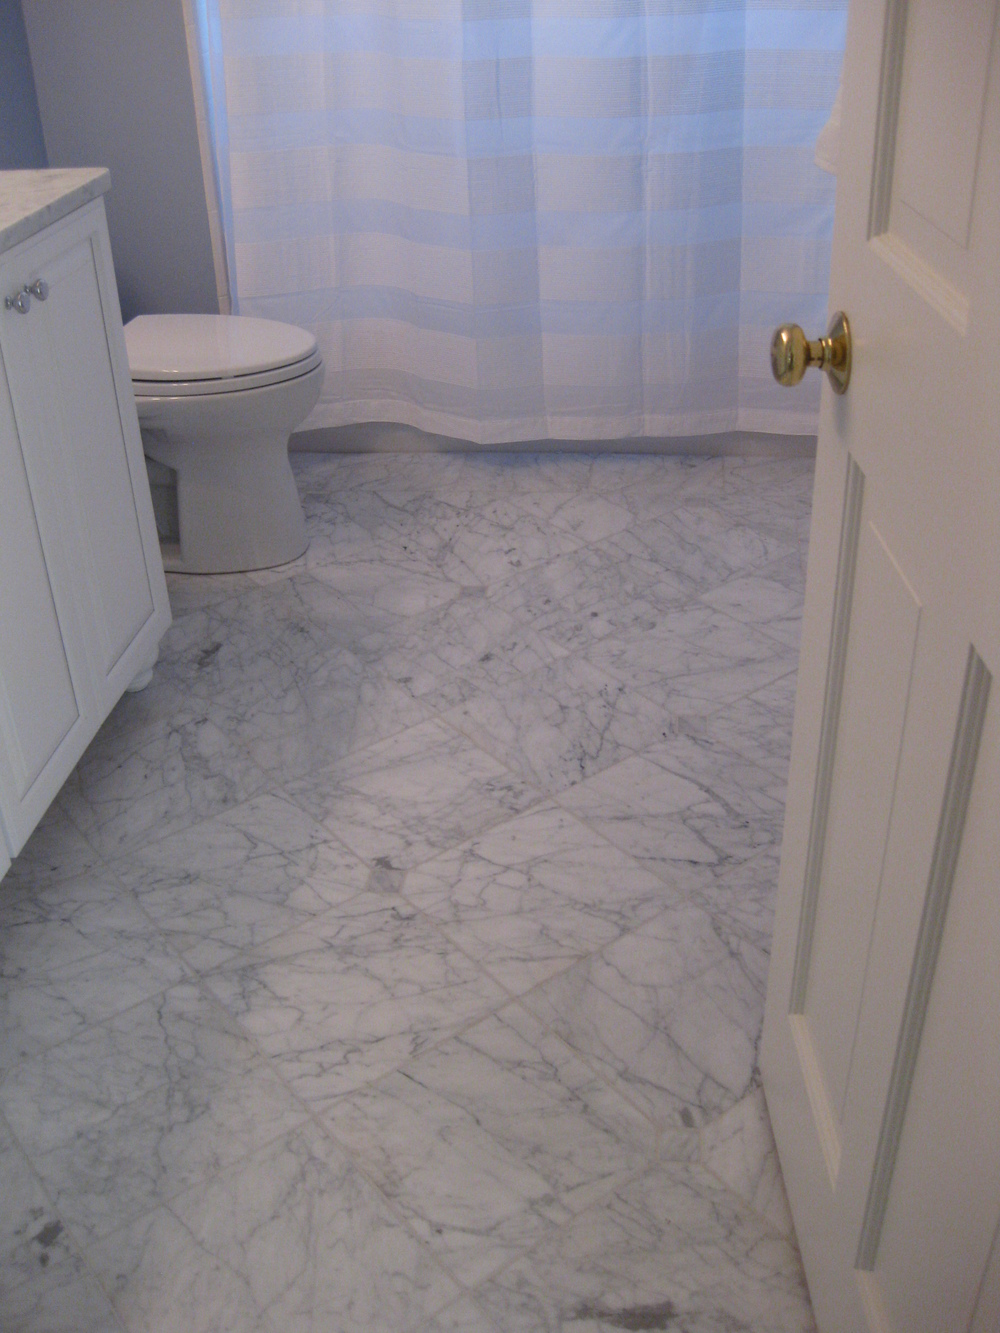 Bathrooms tile installation carrara marble 12 x 12 on the diagonal within a 6 x 12 dailygadgetfo Gallery